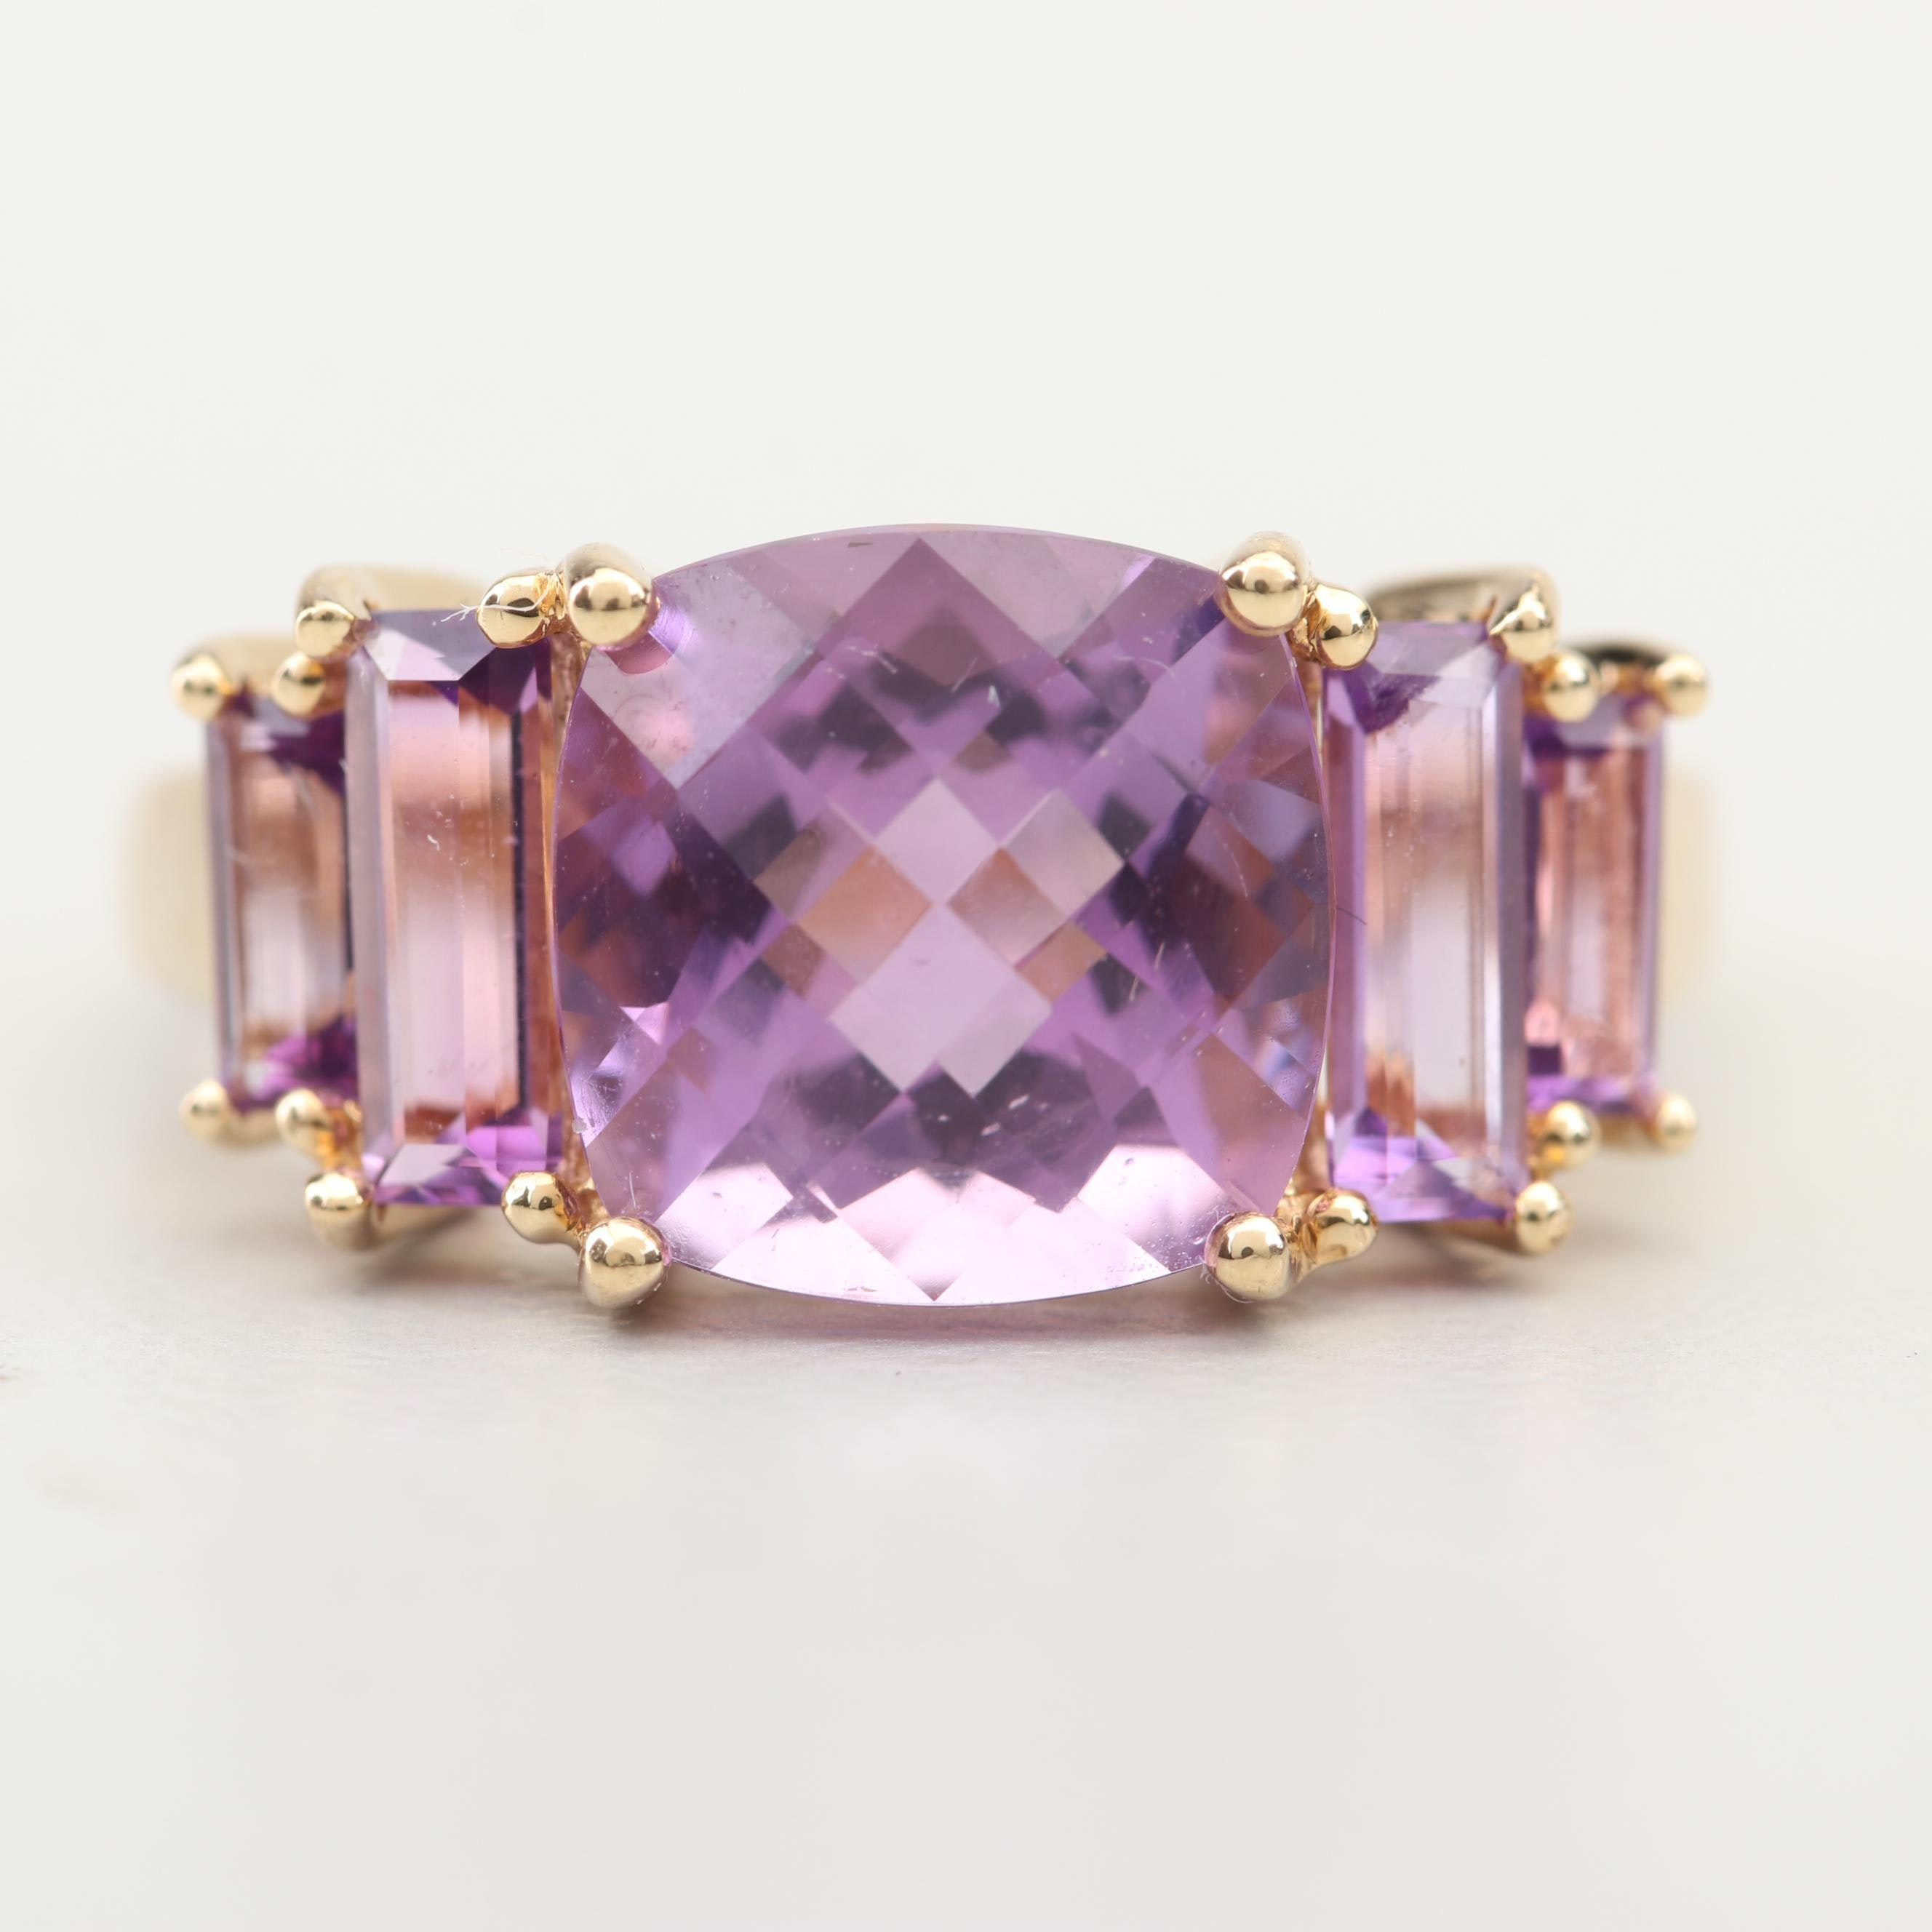 14K Yellow Gold 4.25 CTW Amethyst Ring